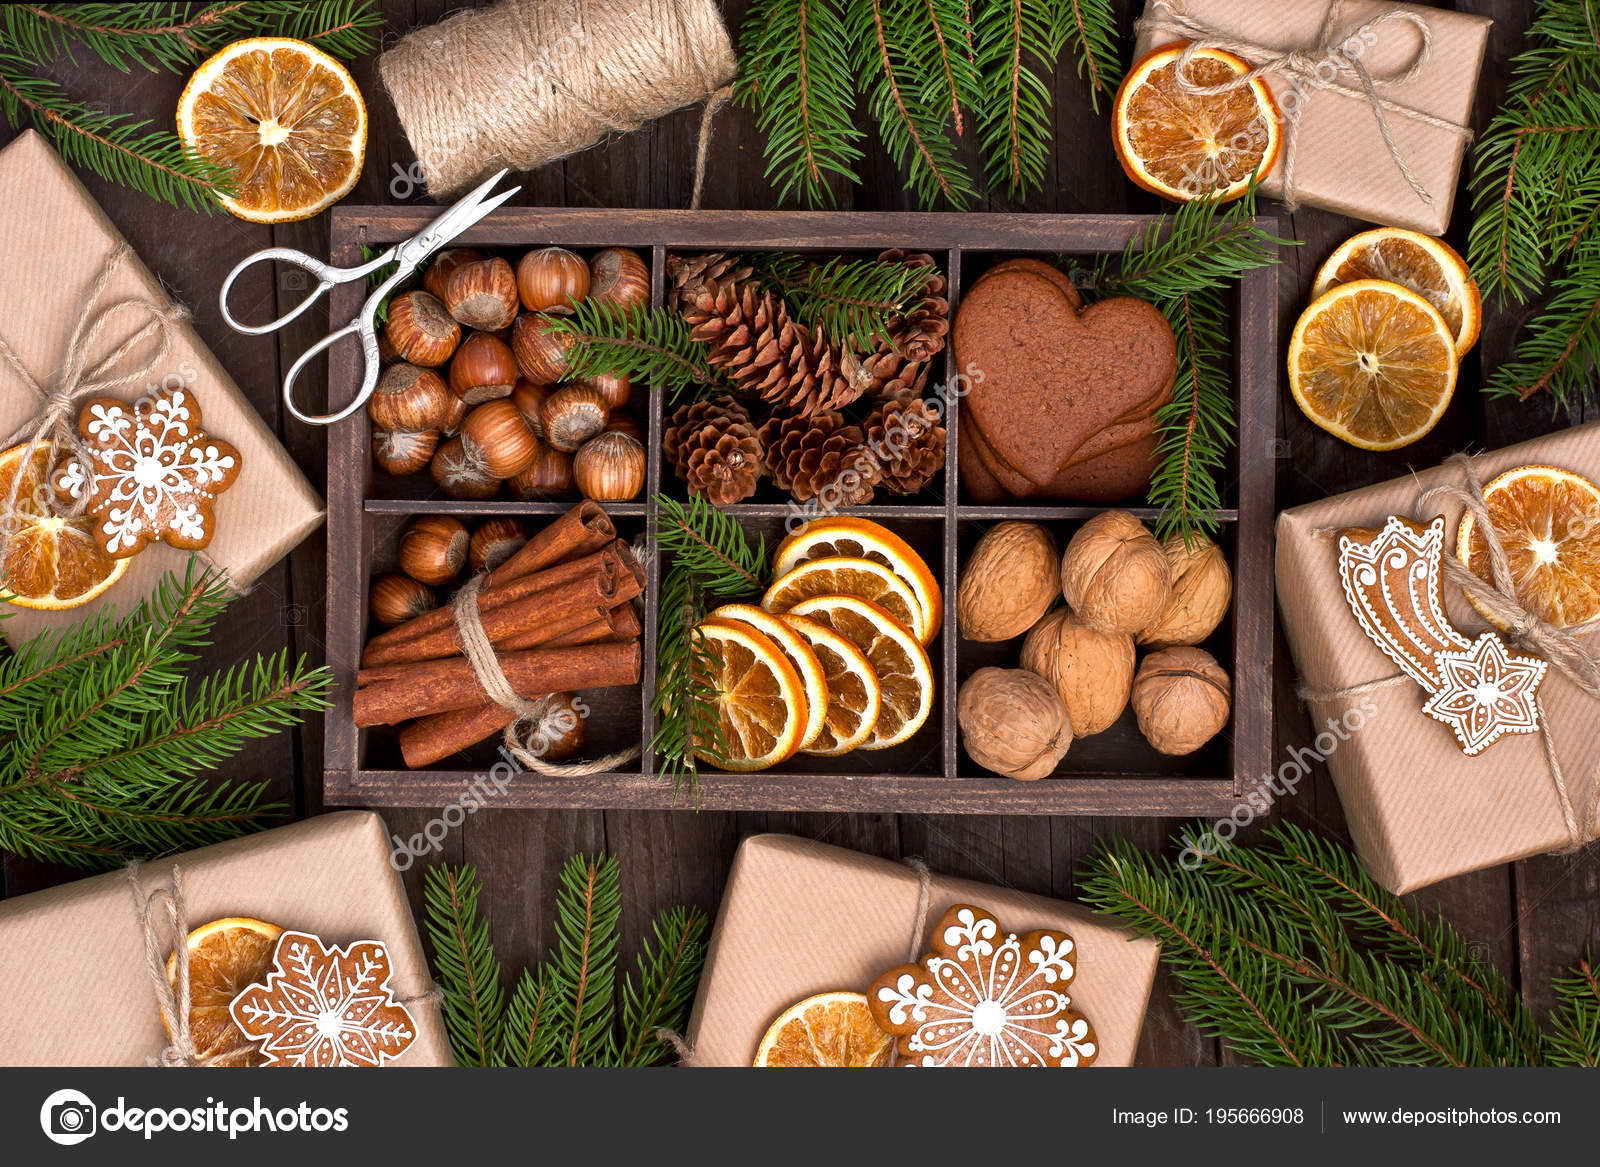 Christmas gift box, food decor and fir tree branch on wooden tab ...